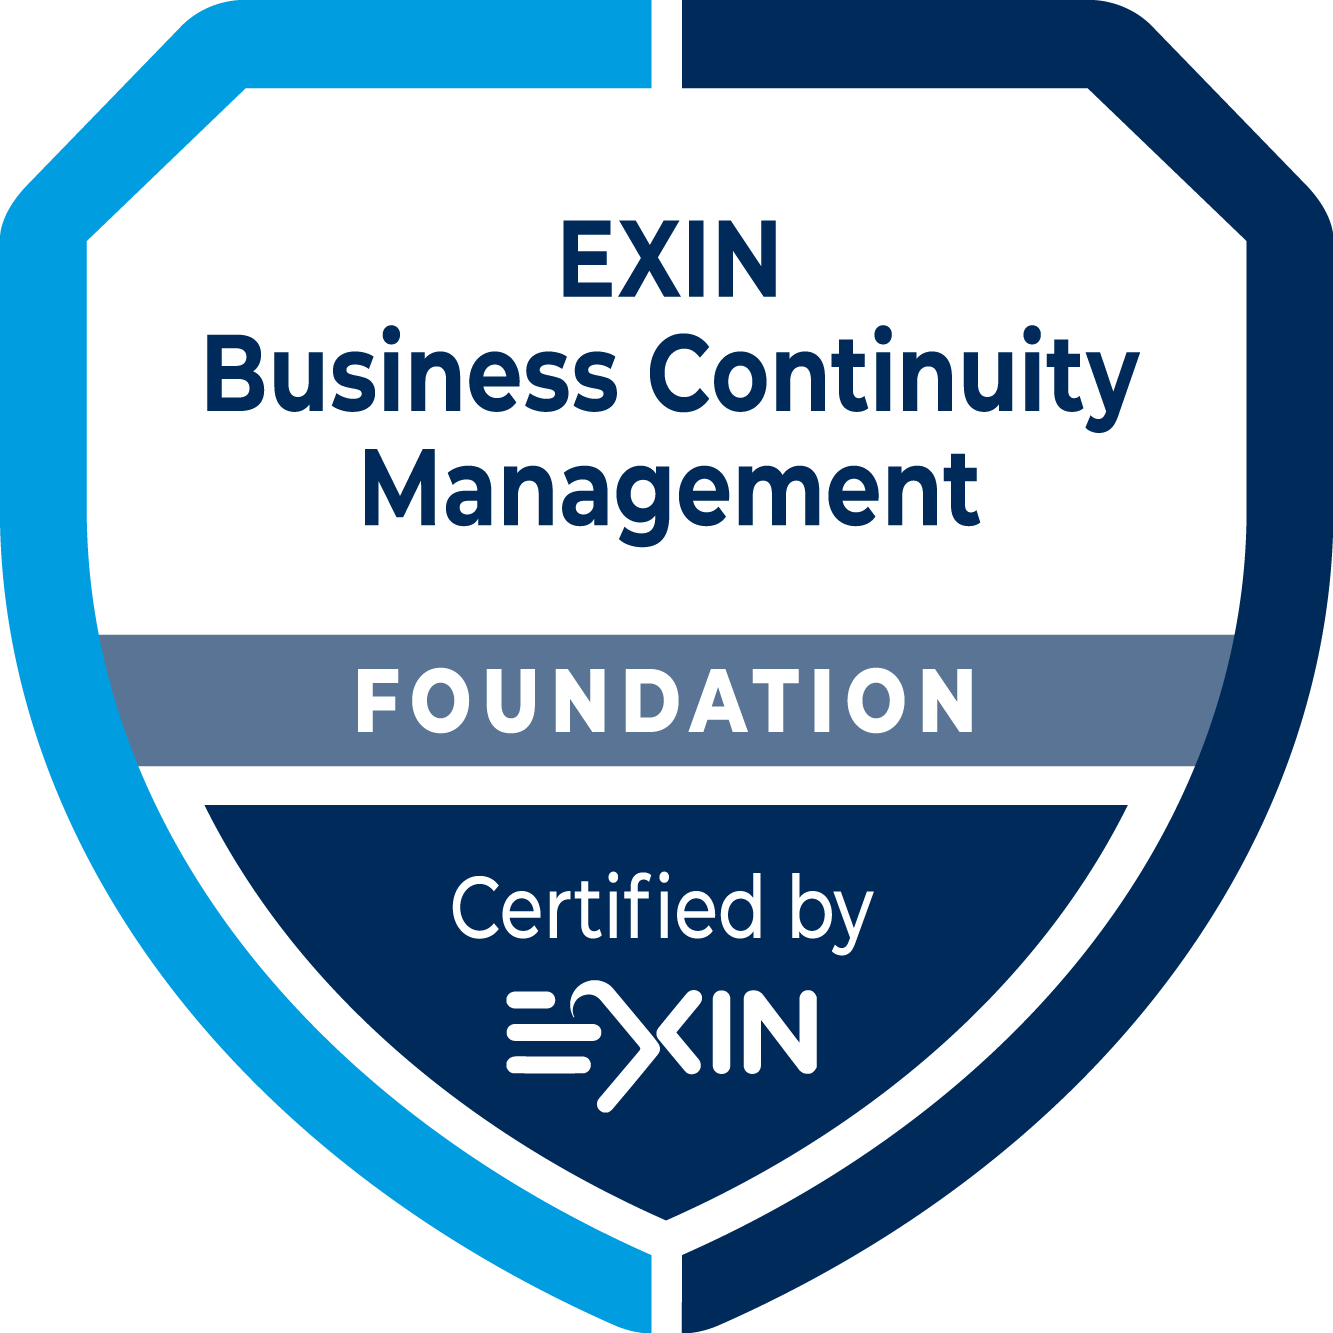 EXIN Business Continuity Management Foundation